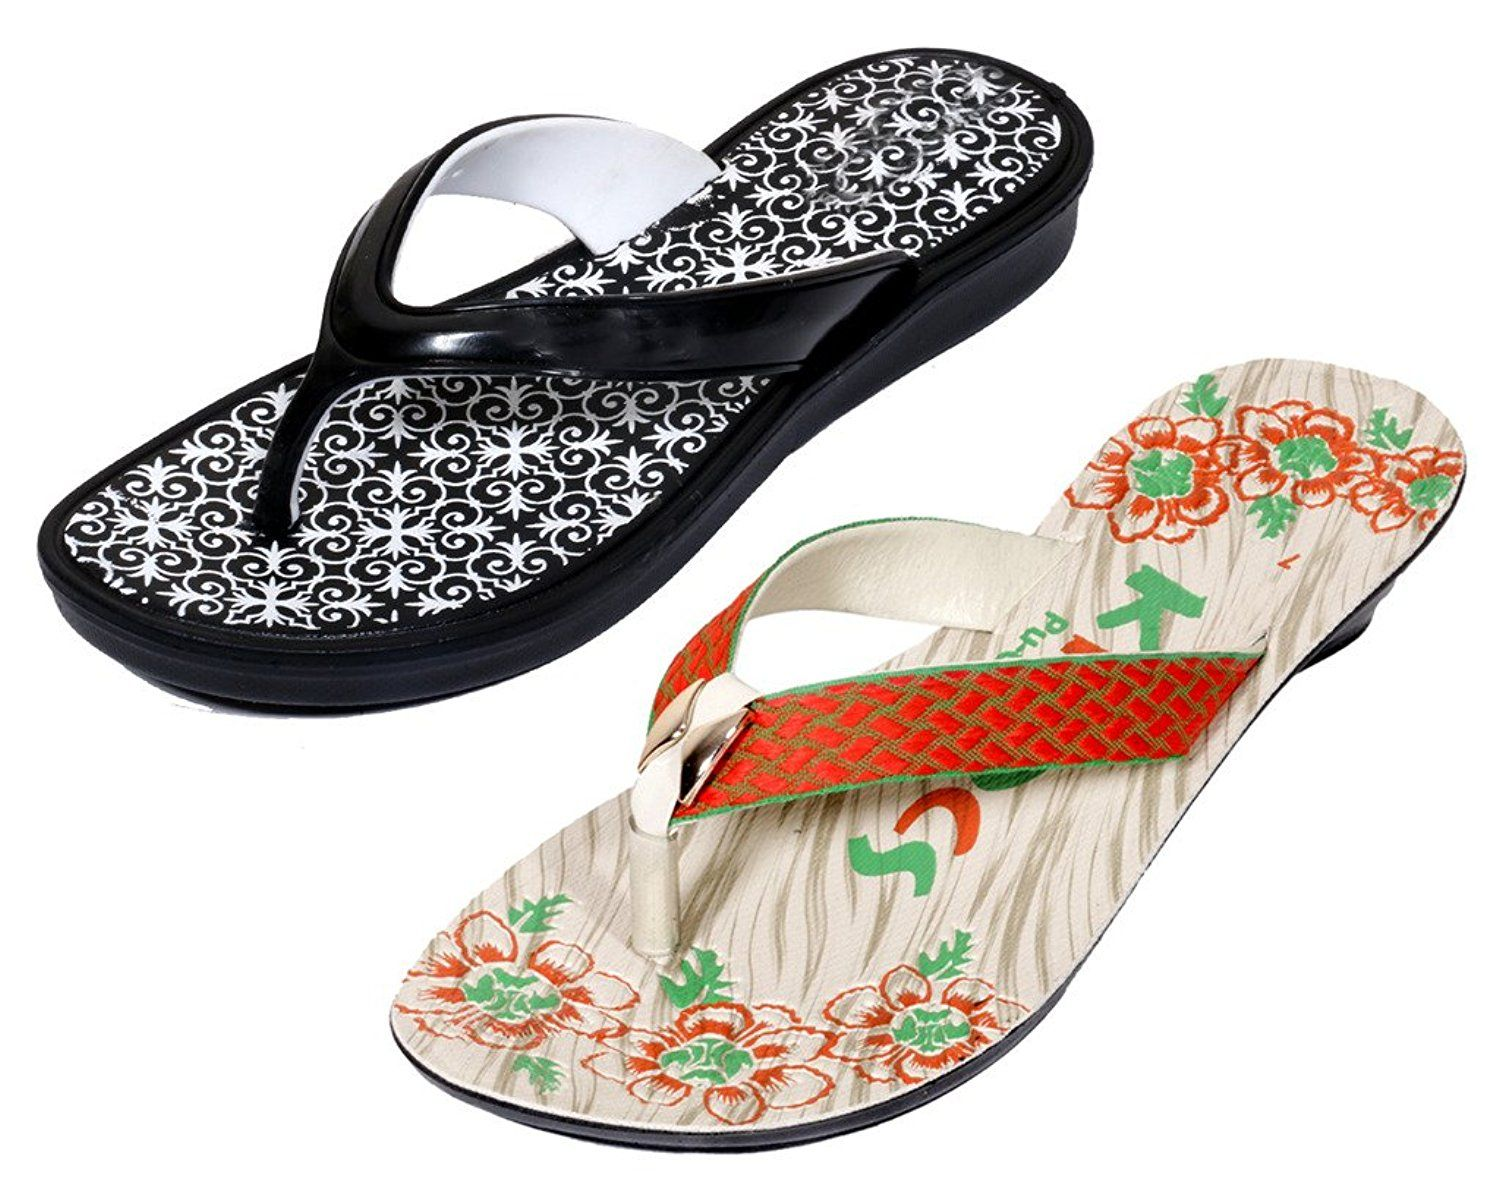 8cc670d2657f Indistar Women s Krocs Flip Flop (Pack Of 2 Pairs)     You can get  additional details at the image link.